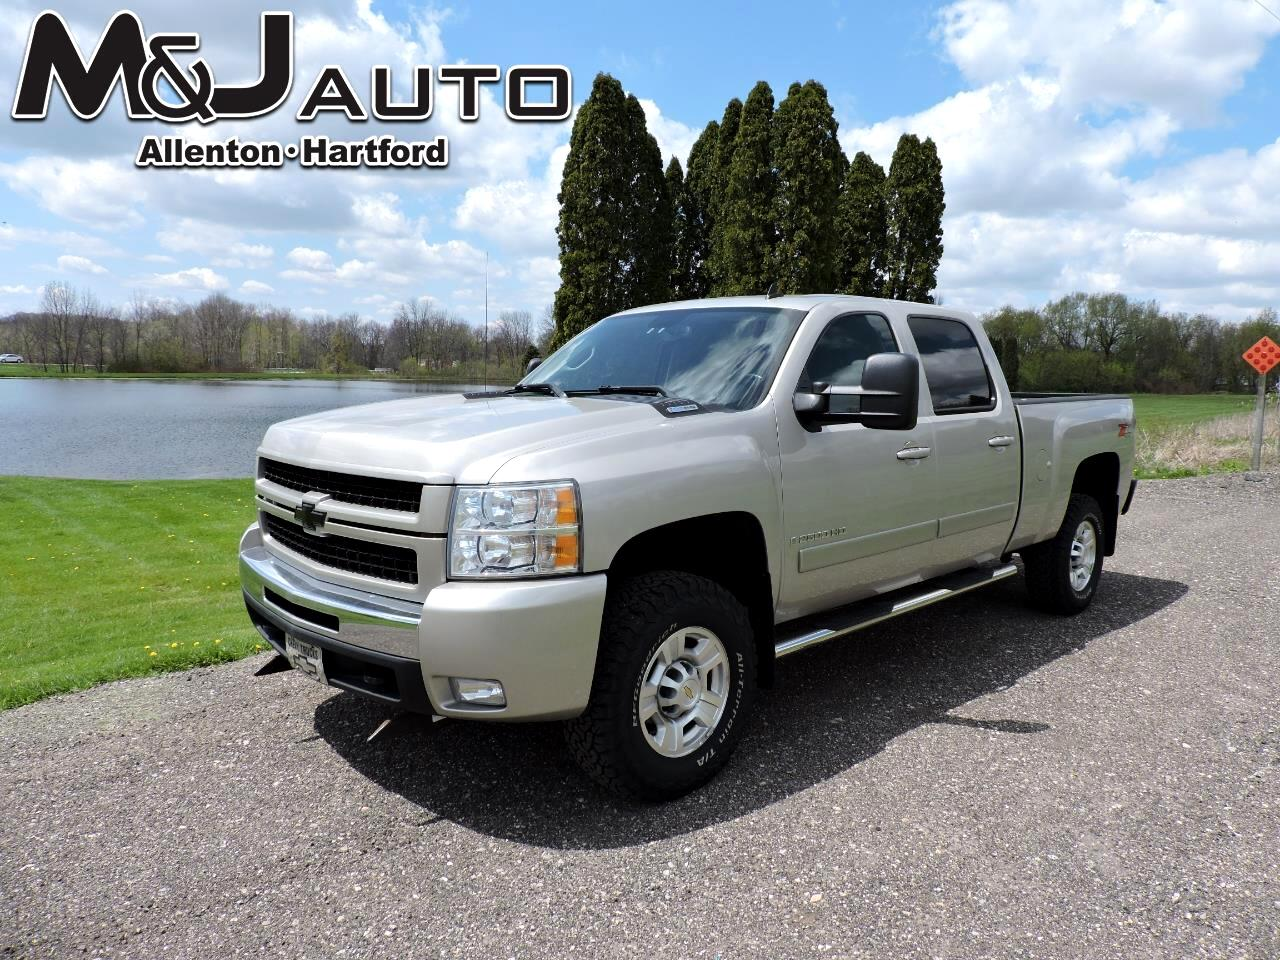 Used Cars for Sale Hartford WI 53027 M&J Auto